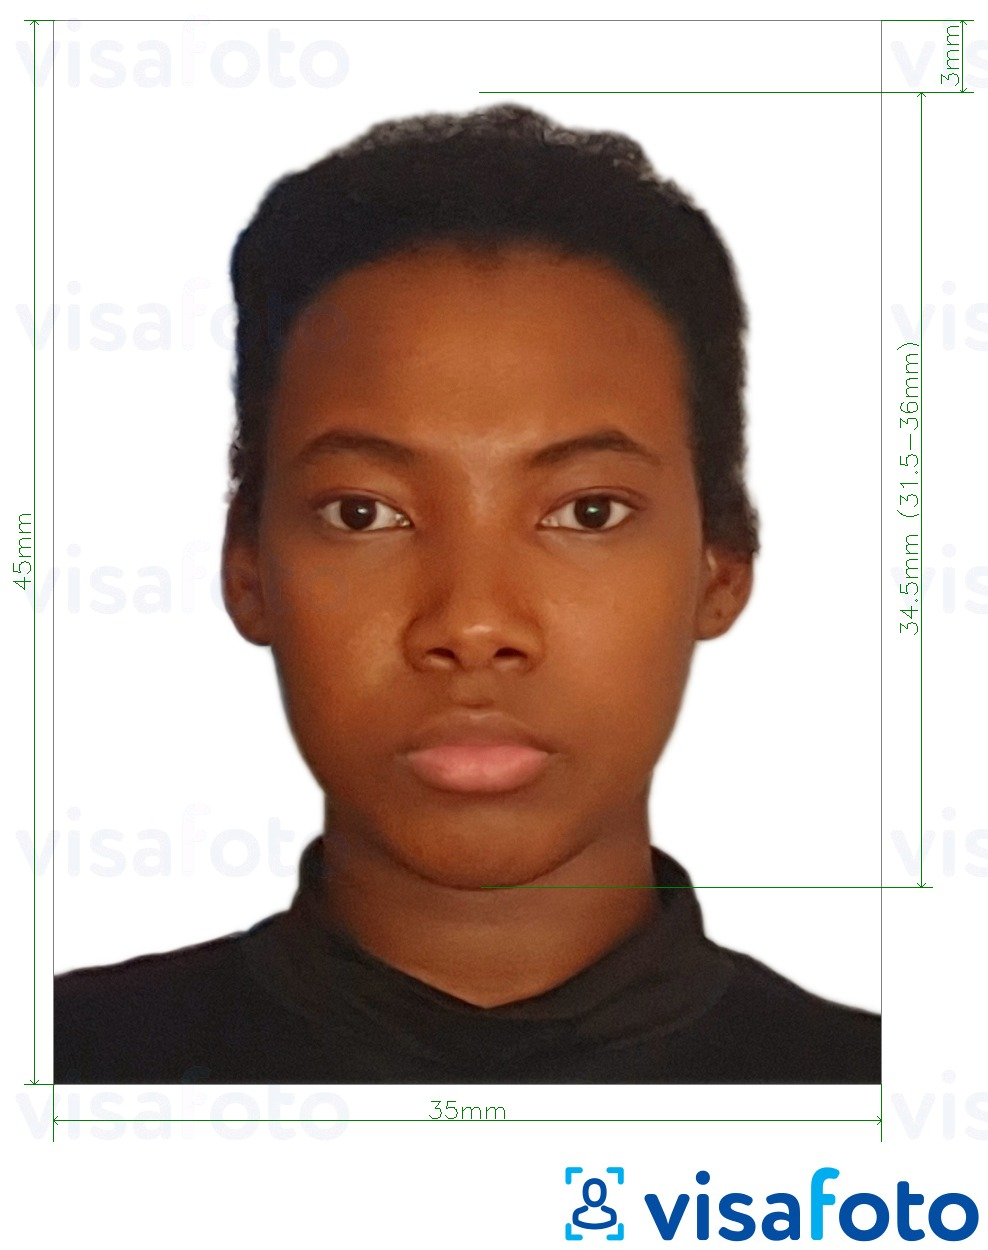 Example of photo for Benin passport 3.5x4.5 cm (35x45 mm) with exact size specification